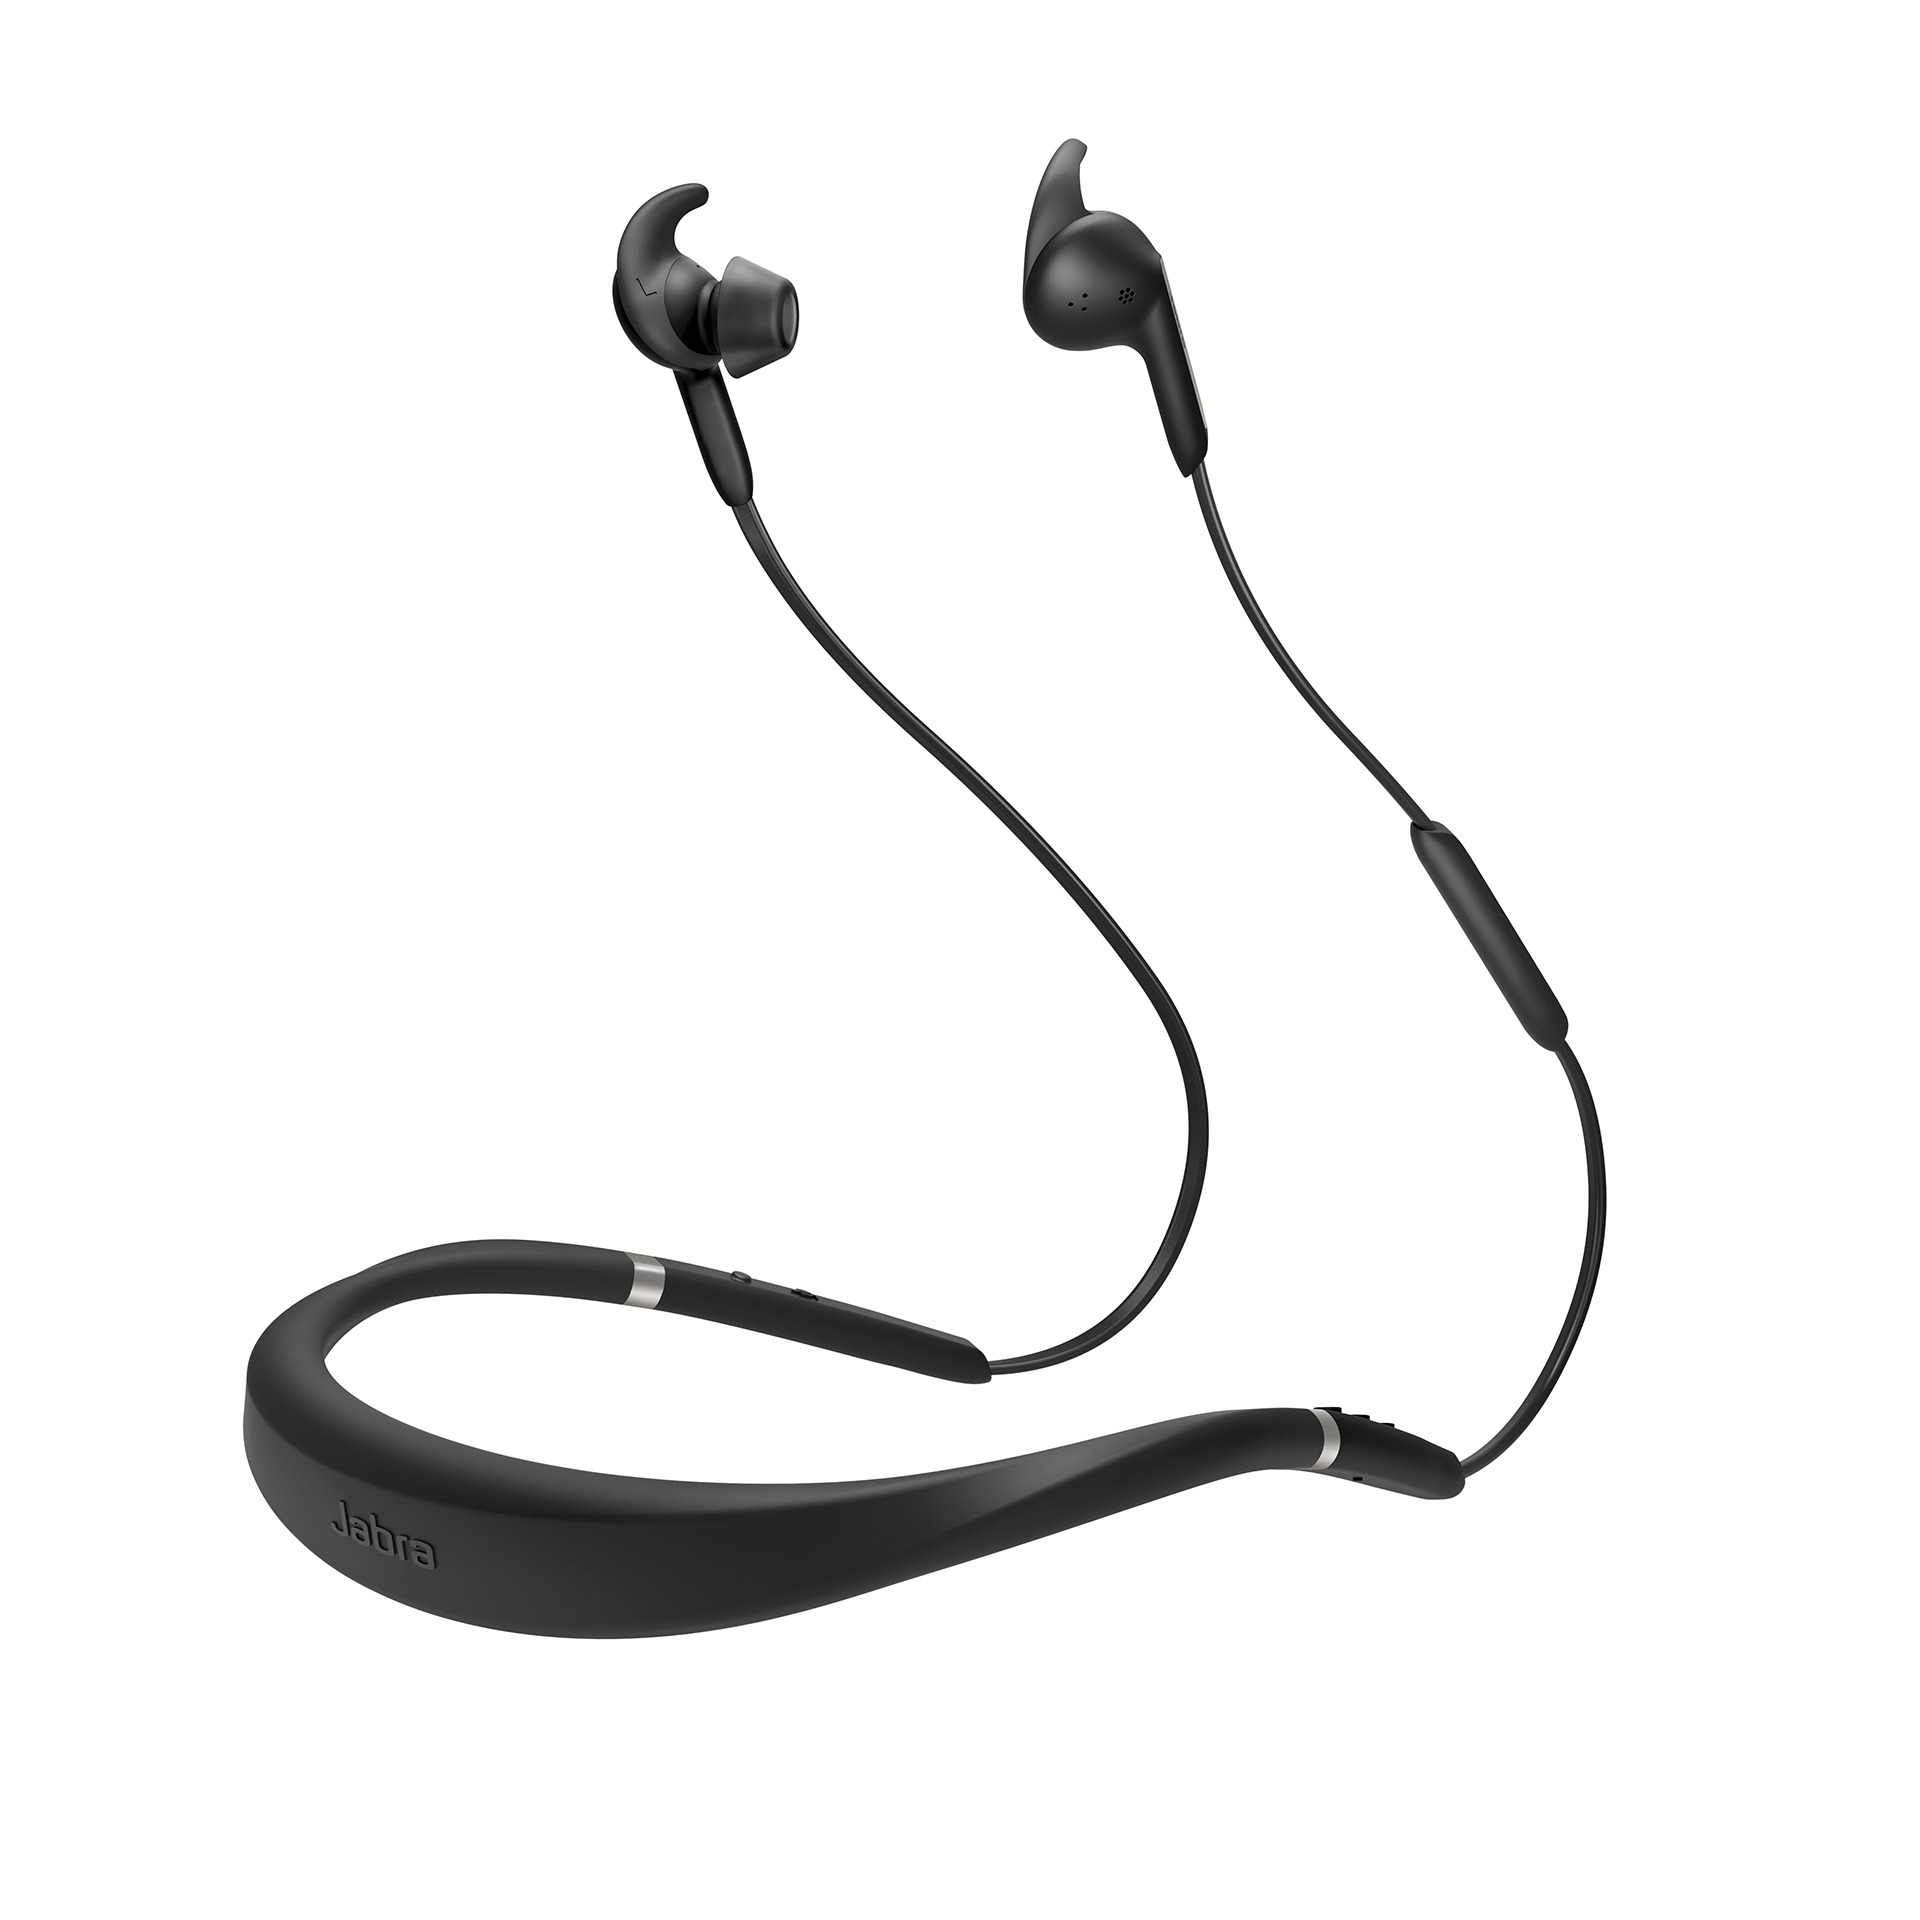 Jabra-Elite-65e-Alexa-Wireless-Neckband-ANC-Earbuds-Manufacturer-Refurbished thumbnail 12